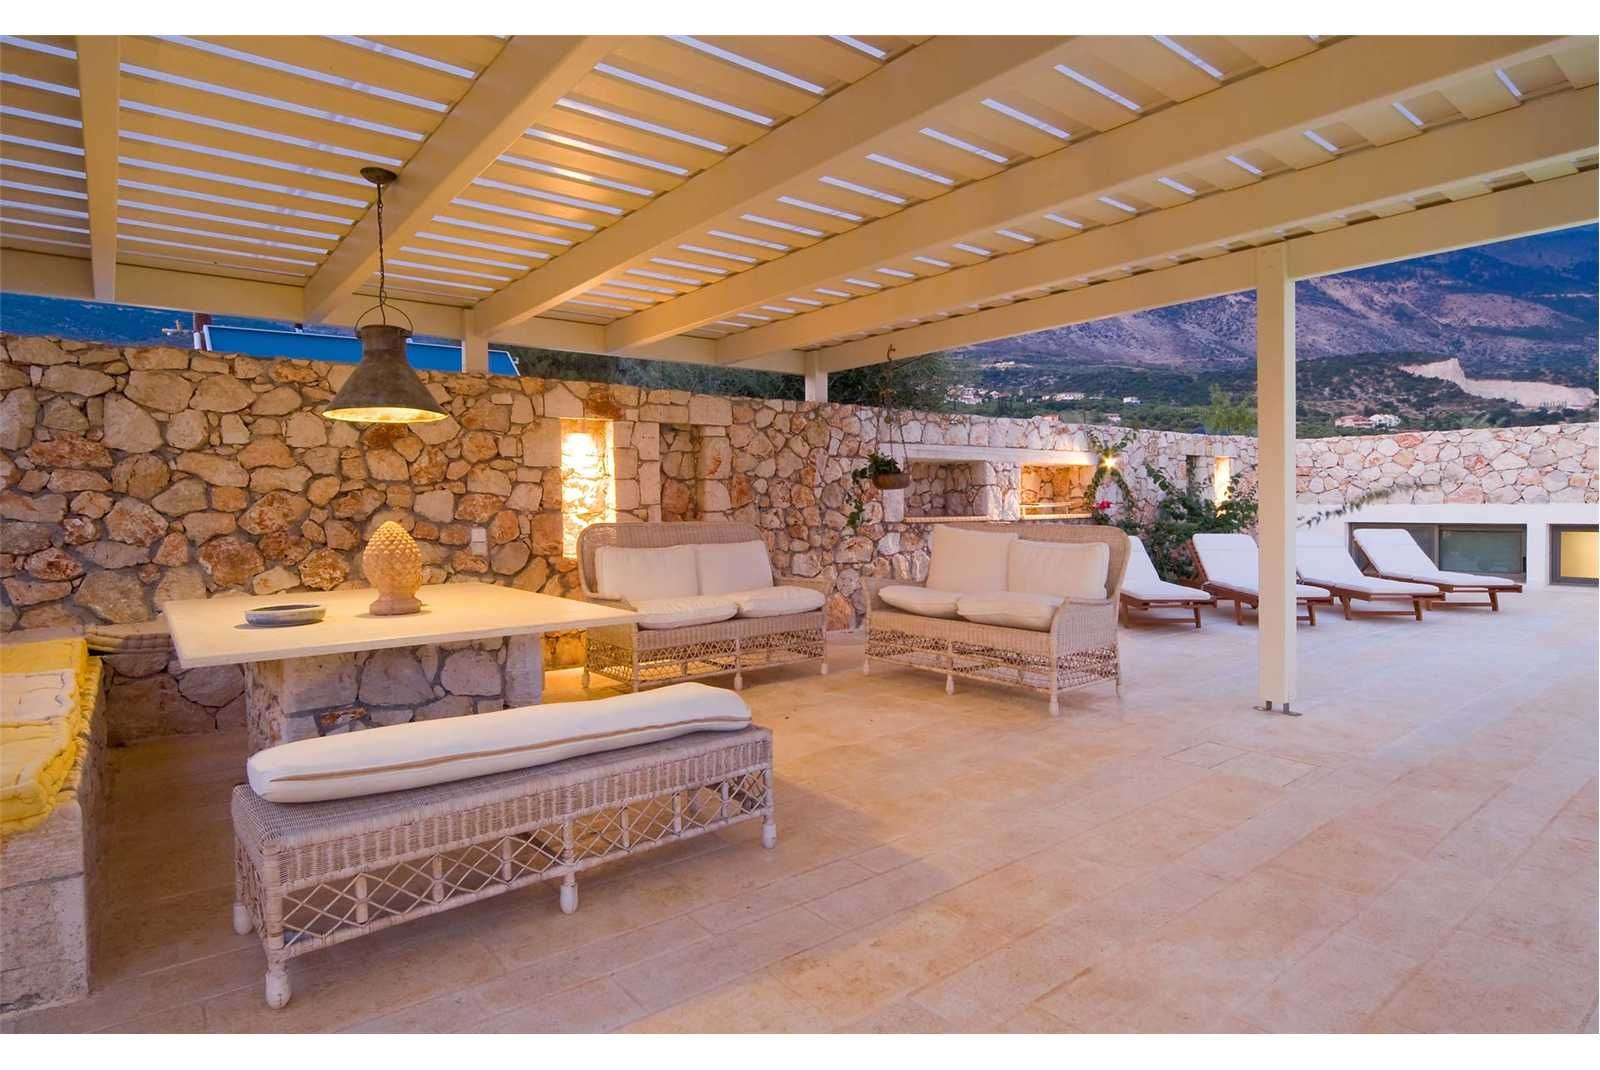 eating area under a pergola - Google Search